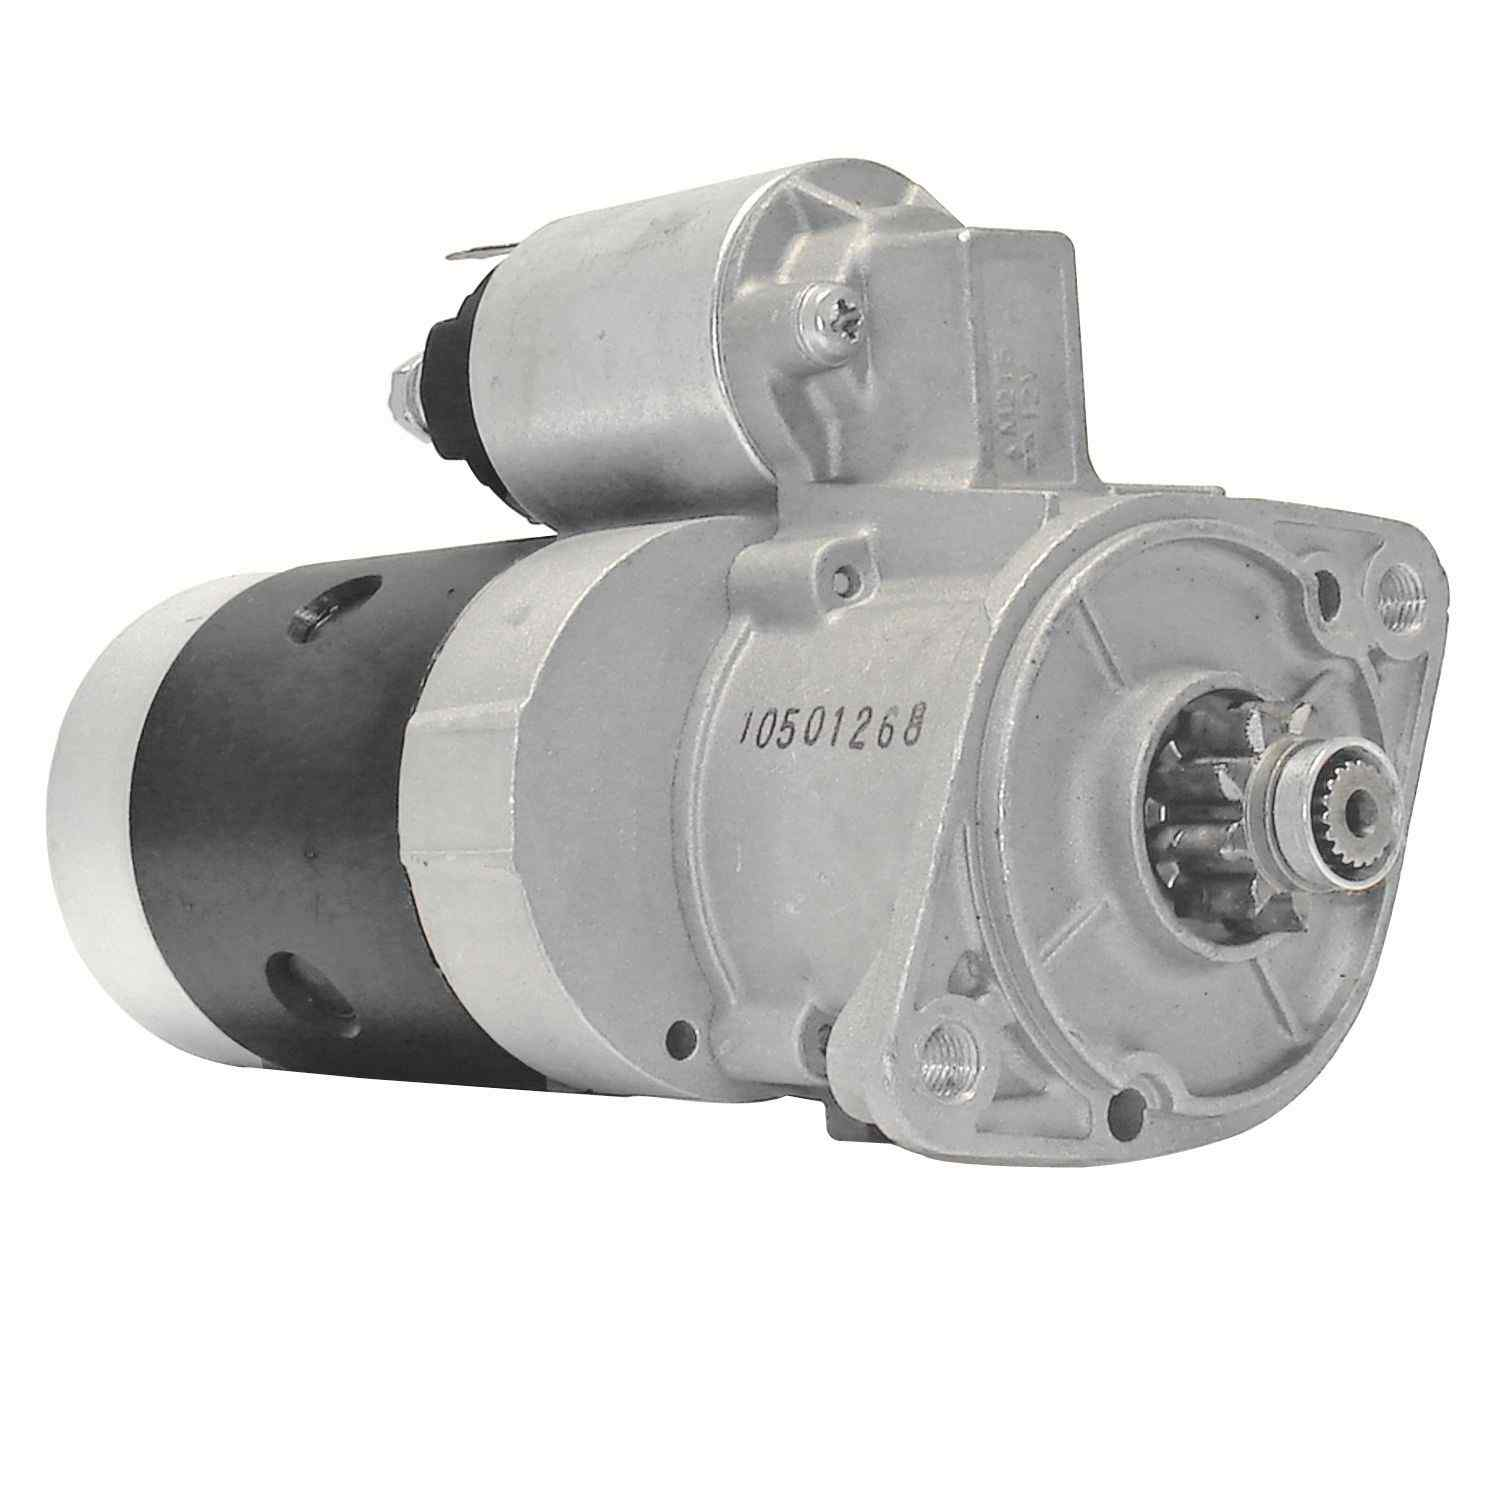 ACDELCO GOLD/PROFESSIONAL - Reman Starter Motor - DCC 336-1384